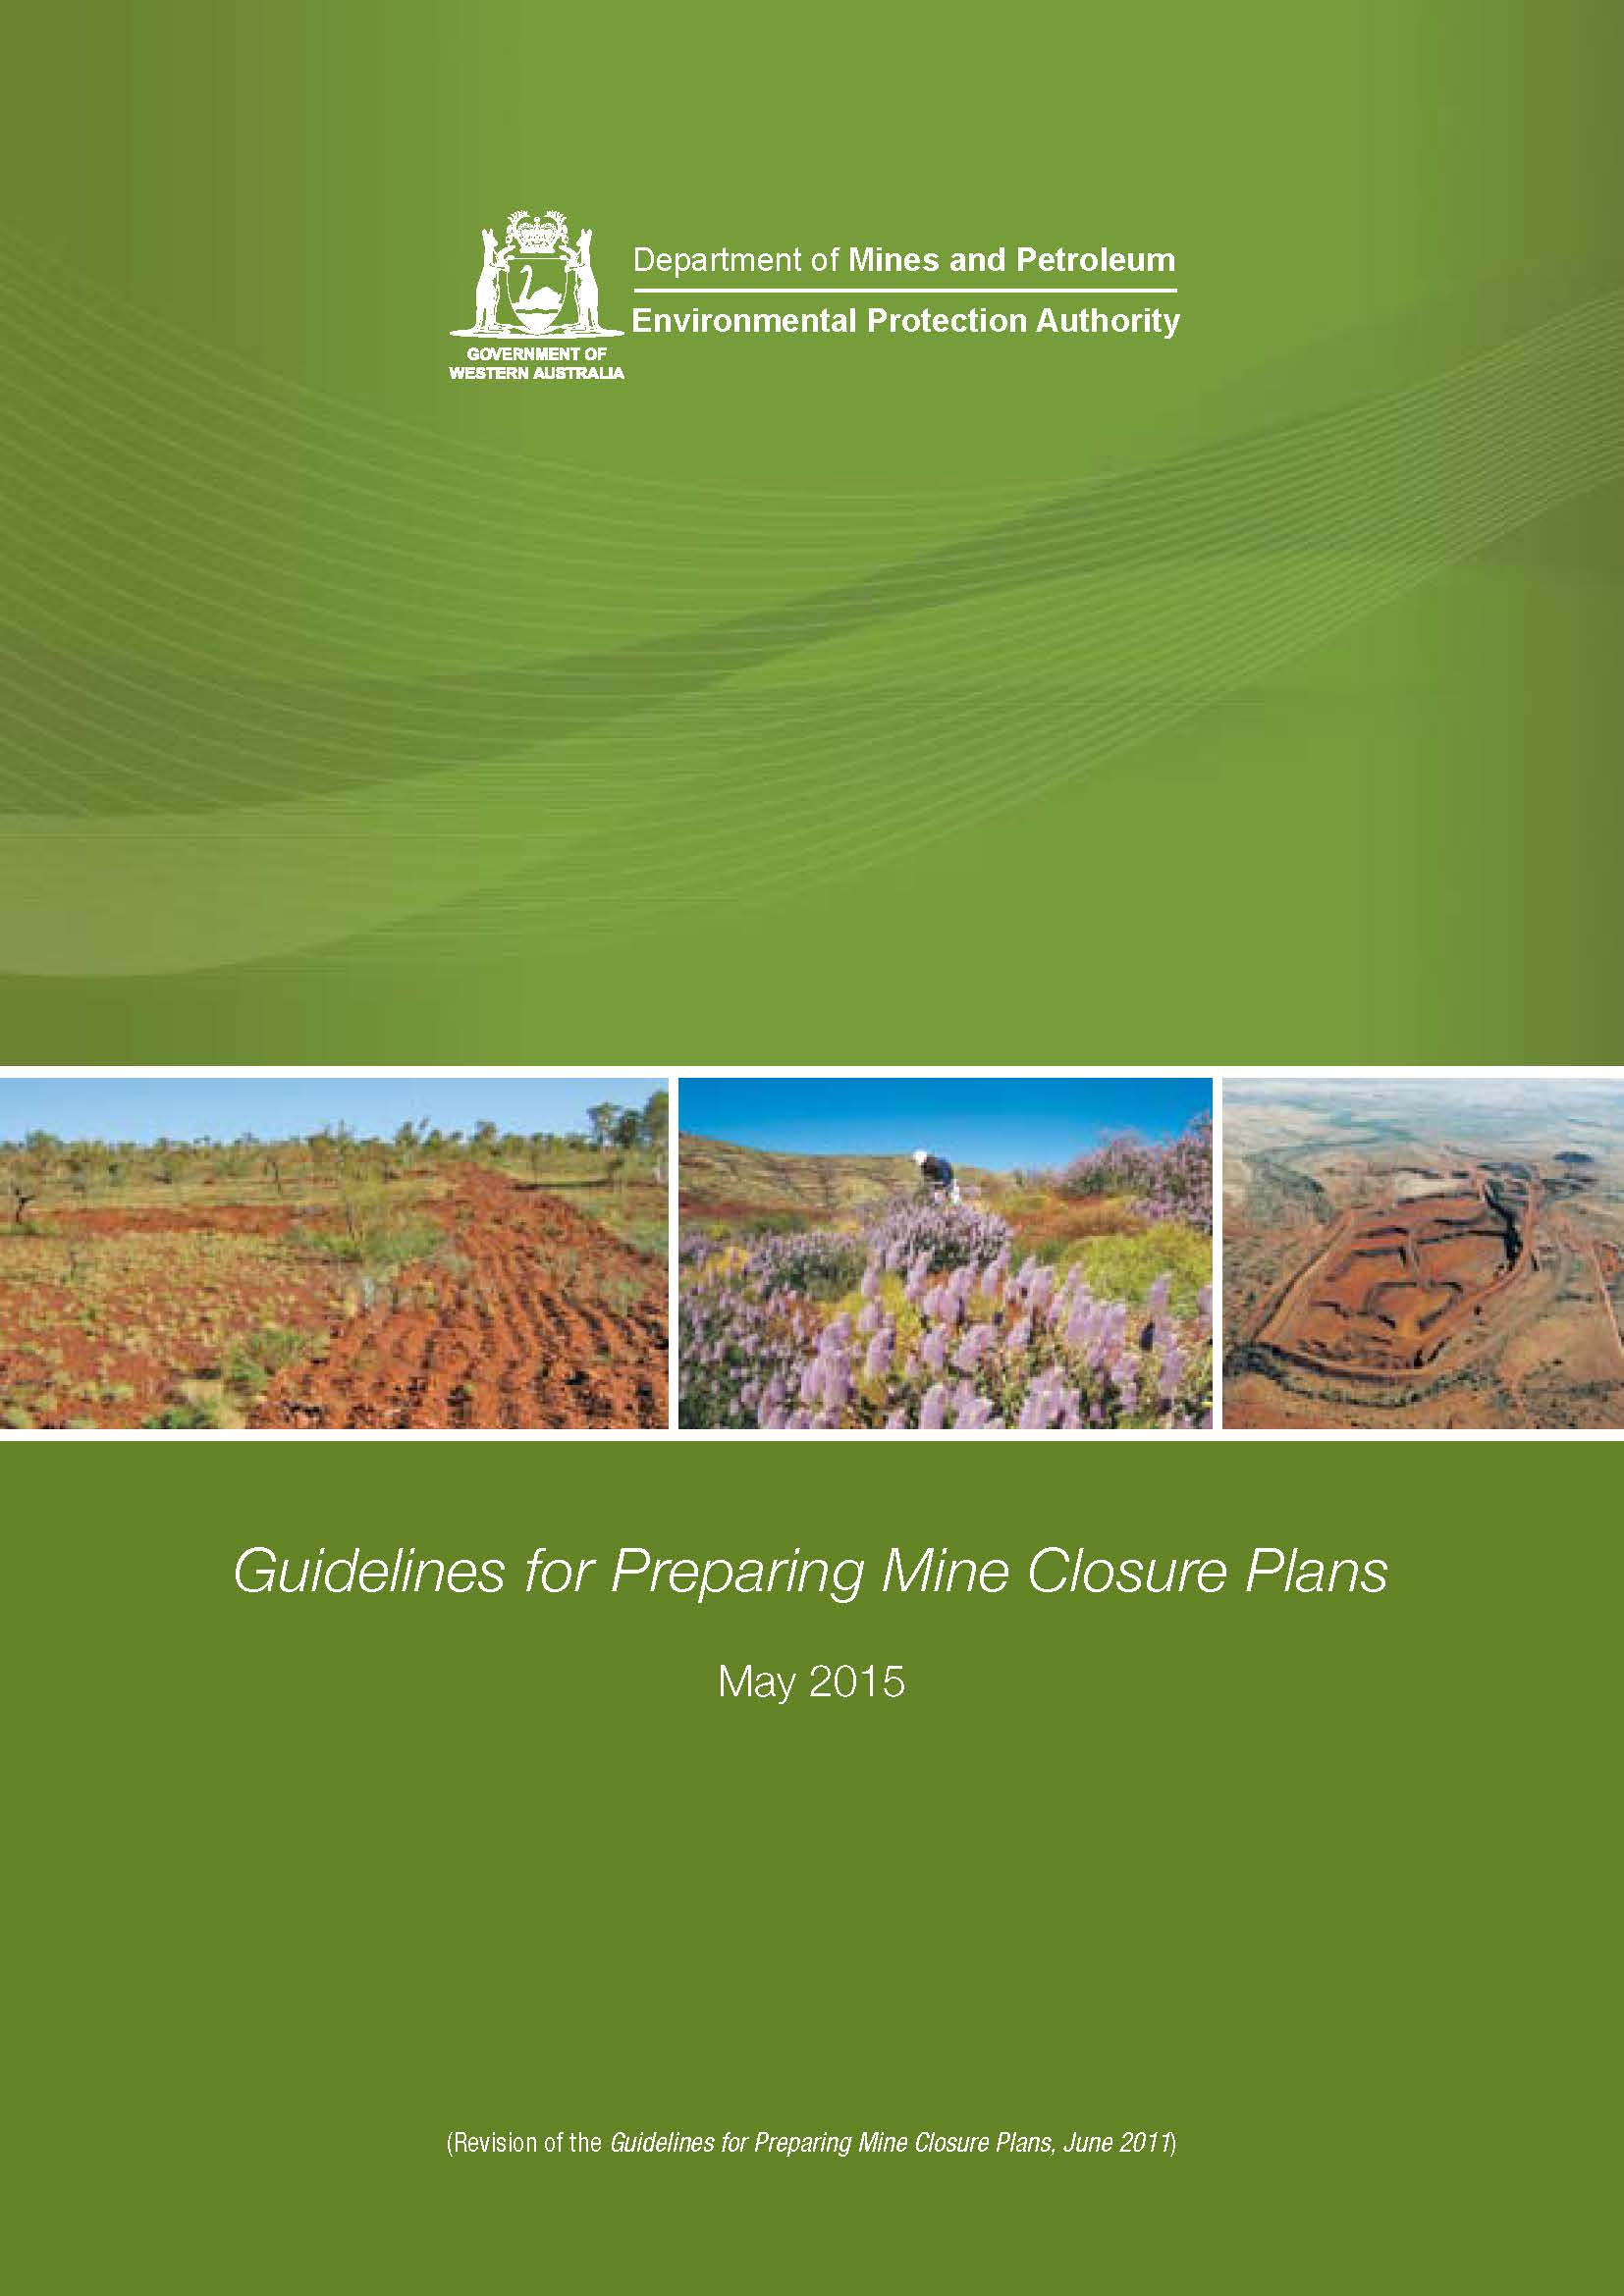 Update: Review of DMP's Mine Closure Guidelines 2015